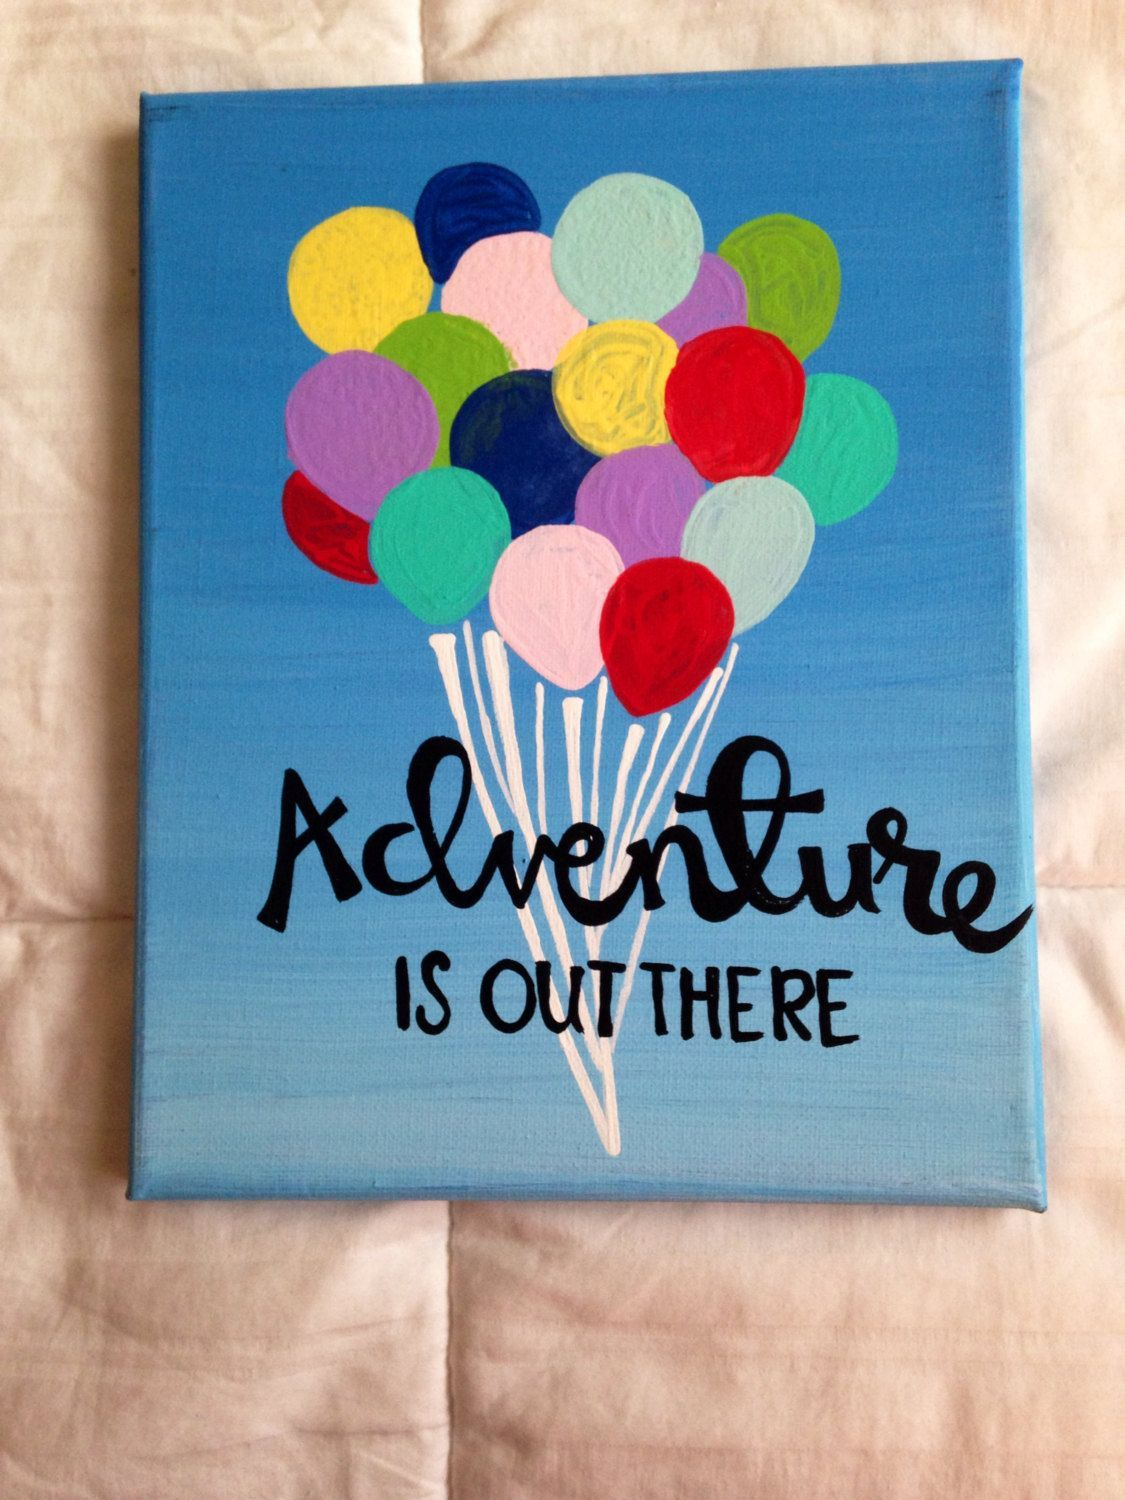 Get This Quote Printed On Canvas Check Out Canvasboogiecom For - Cute easy canvas painting ideas